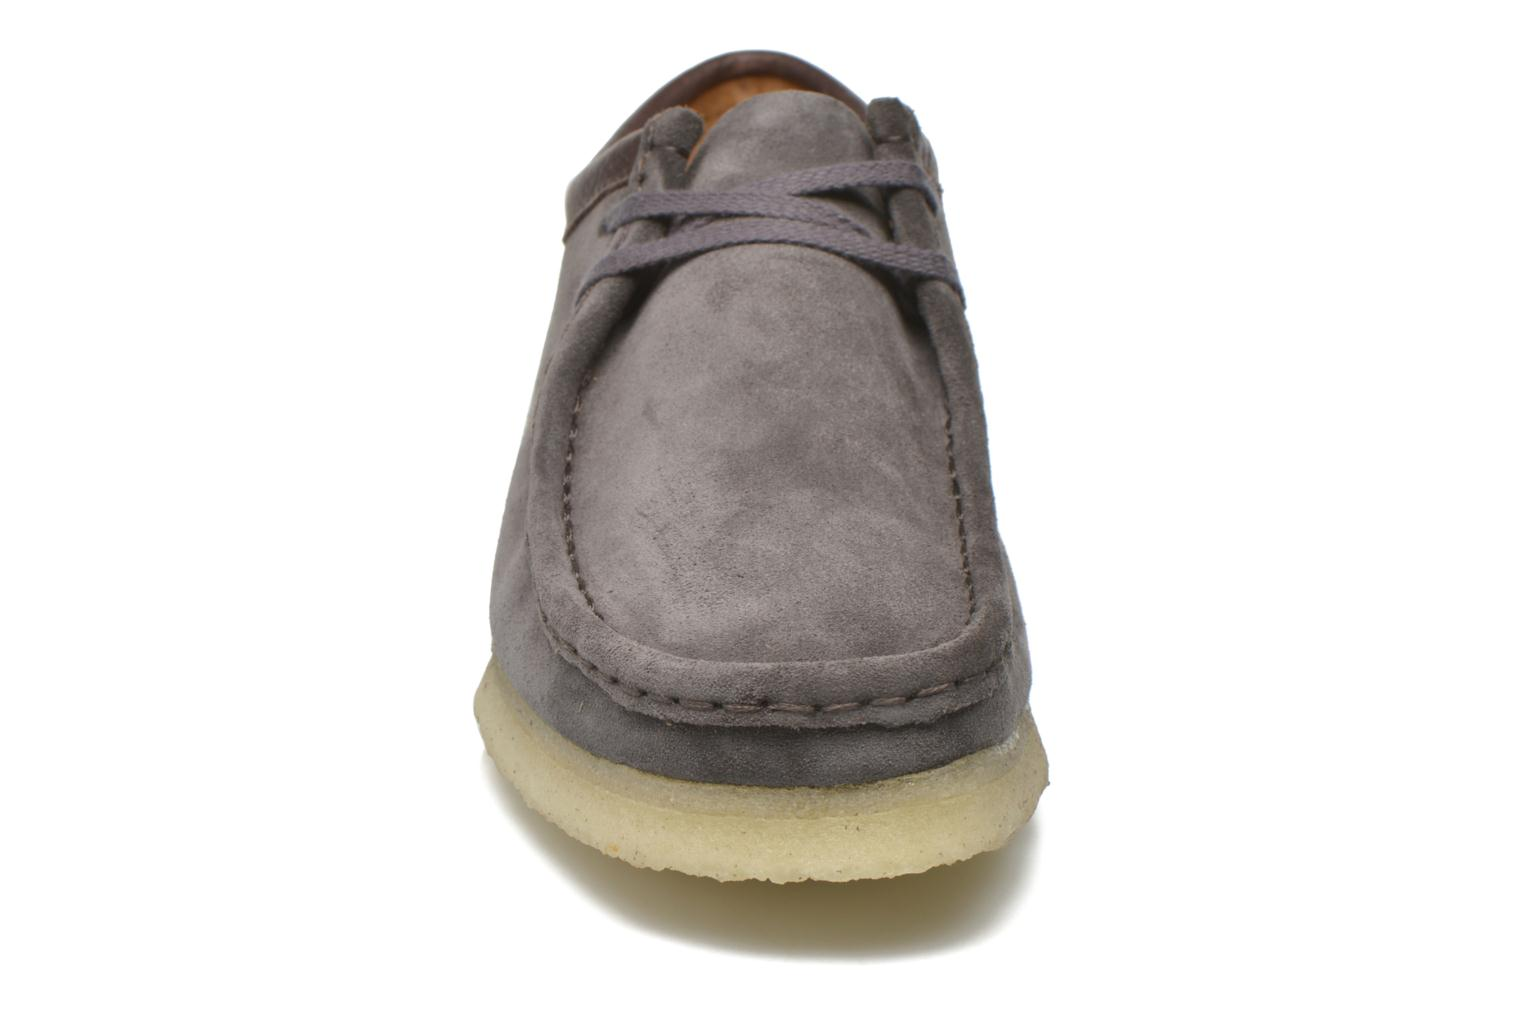 Wallabee M Charcoal suede